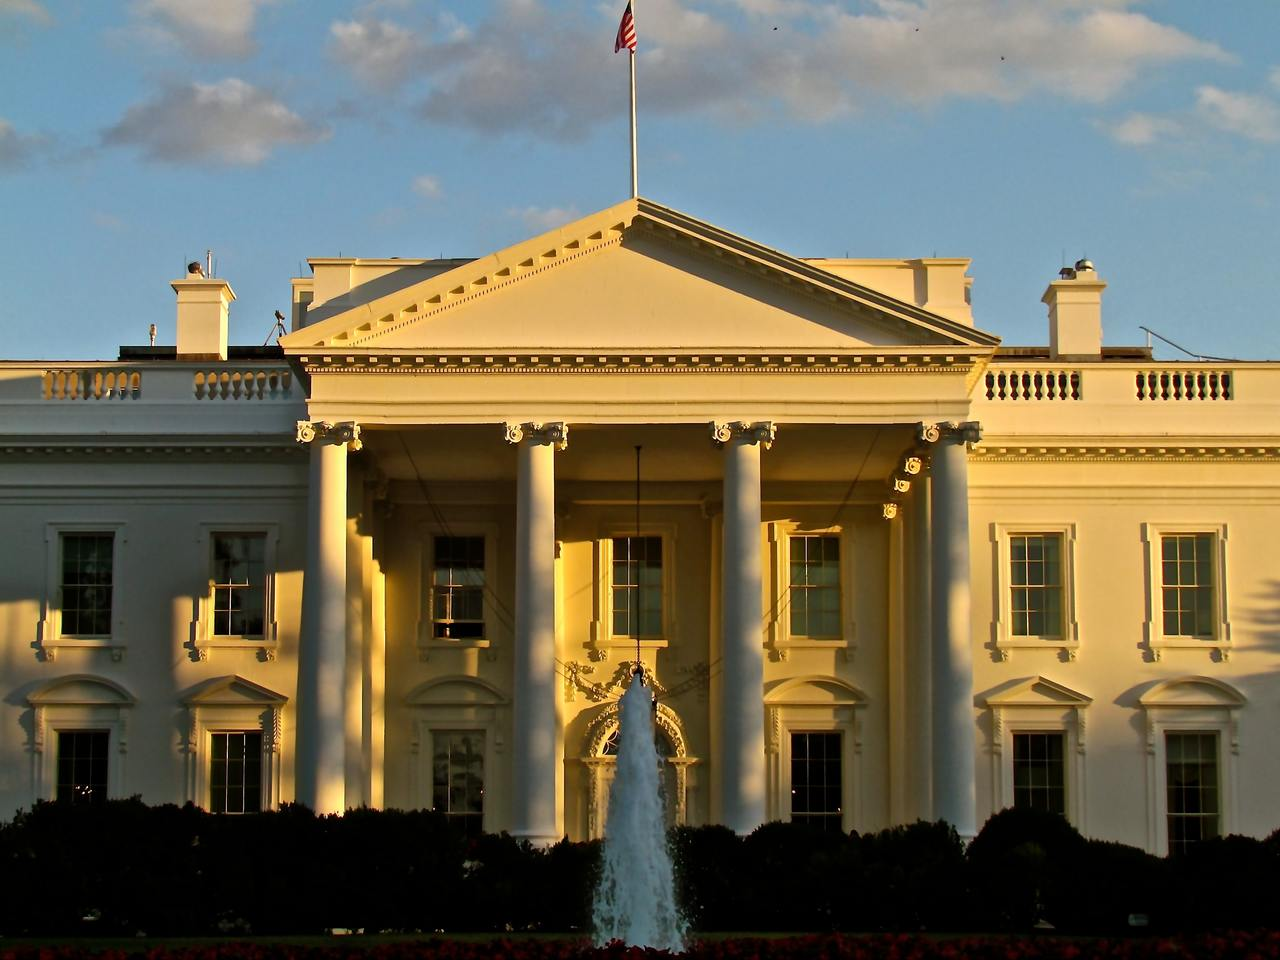 Restoring U.S. climate leadership on the world stage!